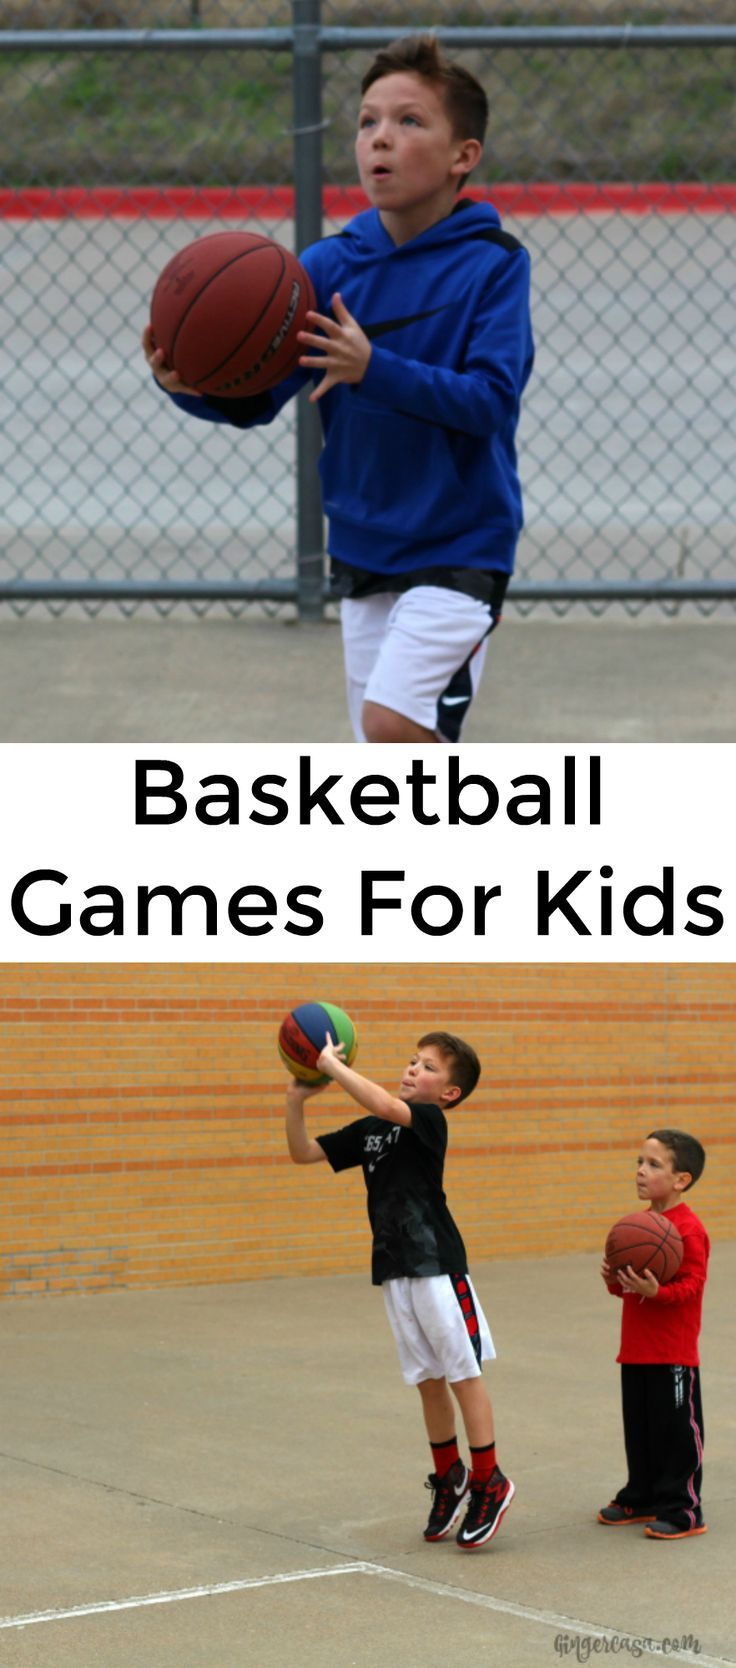 Have Fun With The Family And Practice Basketball Skills At The Same Time With These Basketball Basketball Games For Kids Basketball Skills Fun Basketball Games